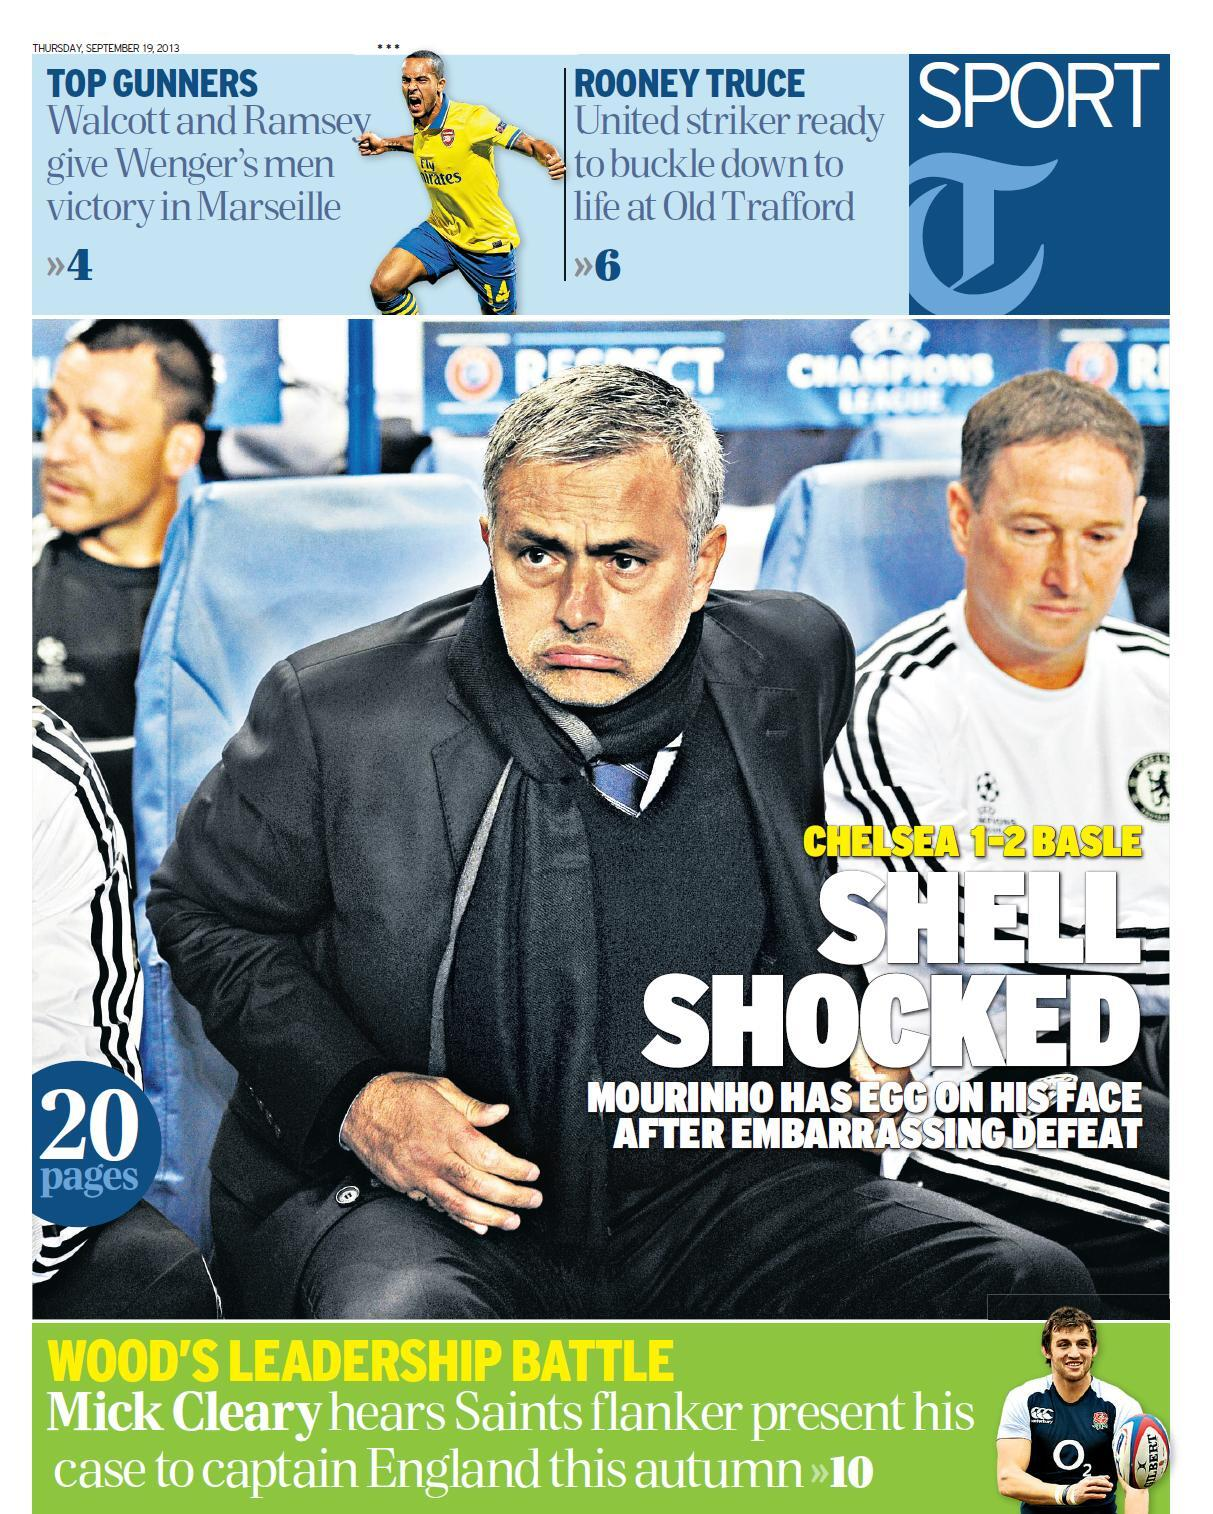 Egg On His Face: Unnamed Daily Telegraph photographer gets epic tragicomic snap of Mourinho during Basel defeat